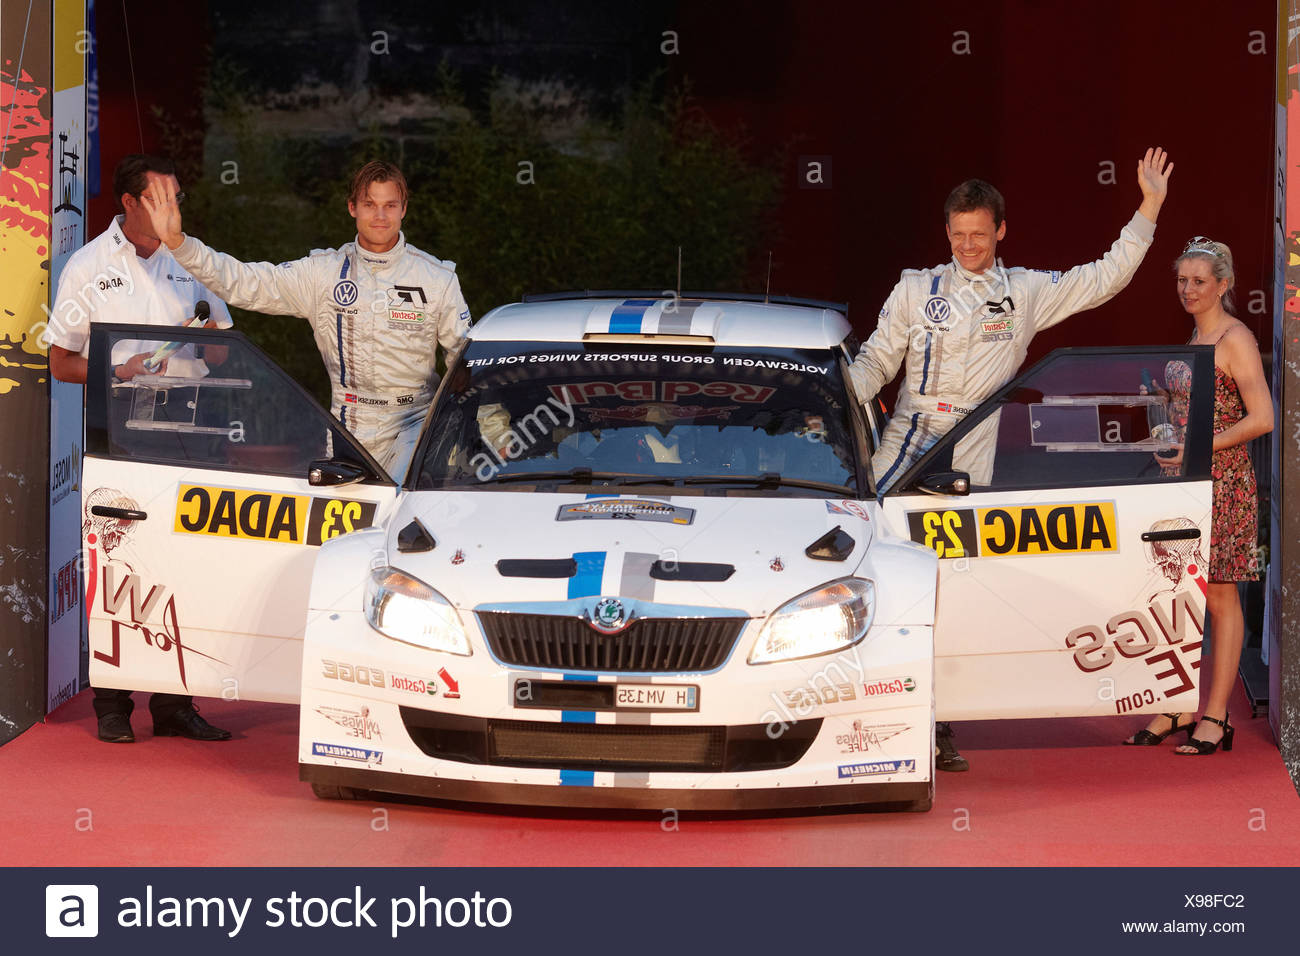 Andreas Mikkelsen, right, and Ola Floene starting at the Porta Nigra in a Skoda vehicle to the ADAC Rally Germany, Trier - Stock Image